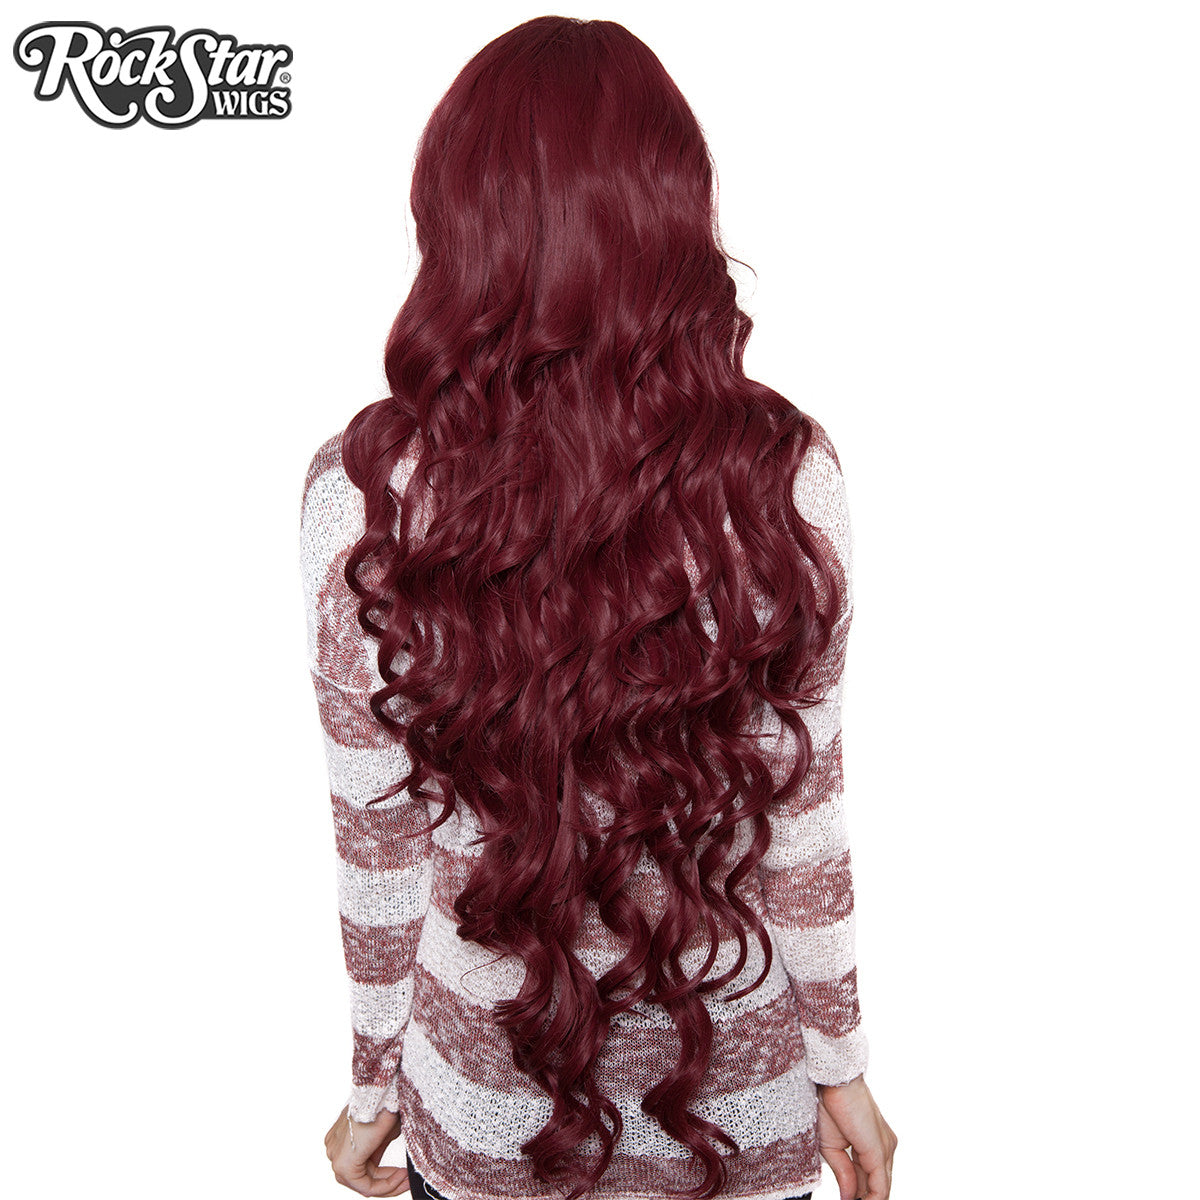 RockStar Wigs® <br> Godiva™ Collection - Burgundy -00181